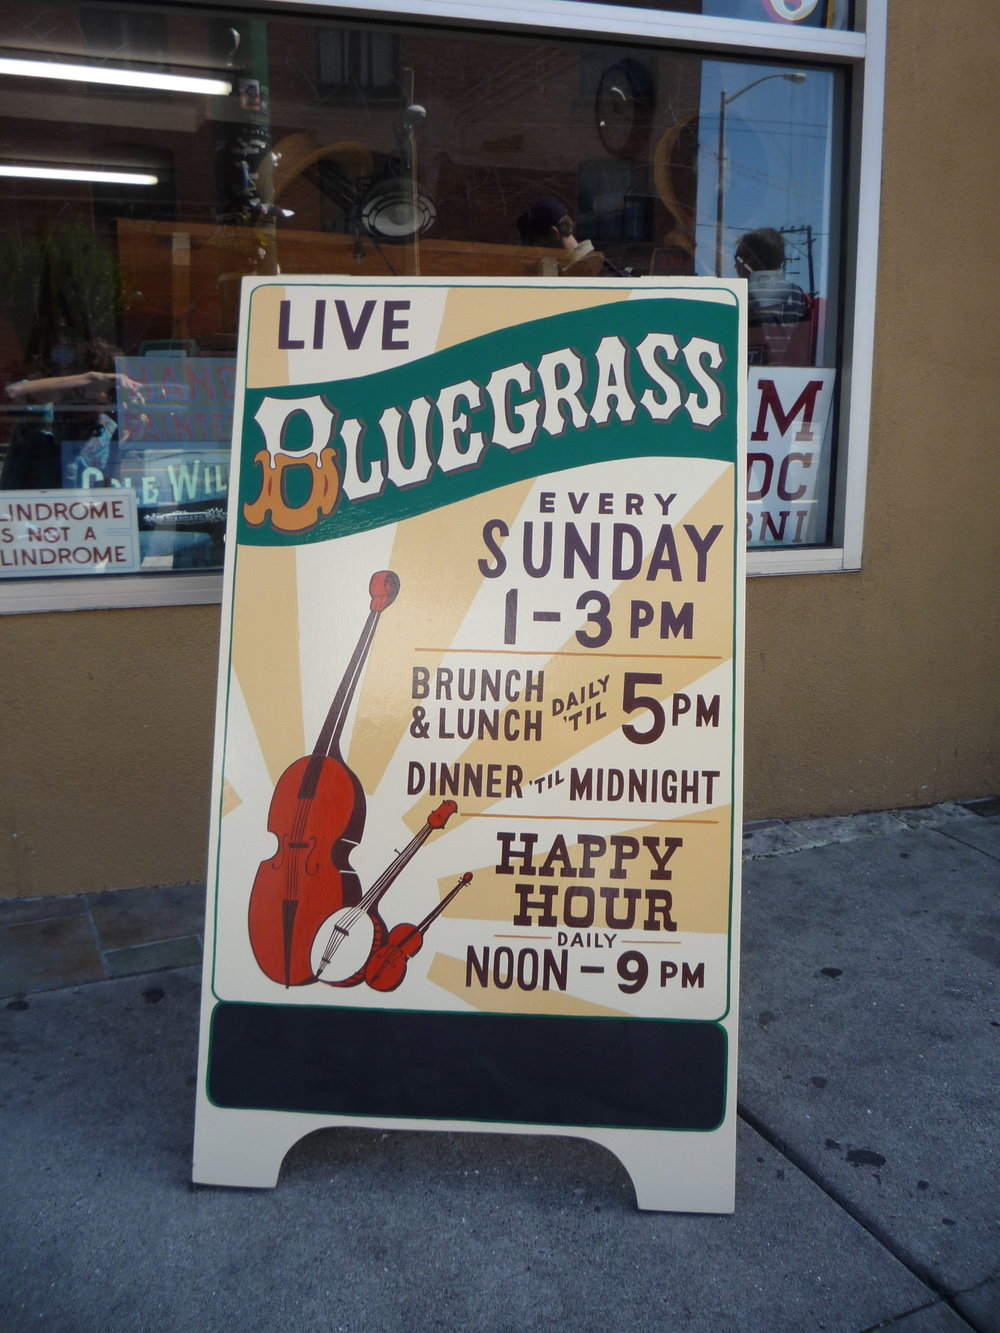 ORIG-live-bluegrass-at-the-buckshot-bar_4746995943_o.jpg